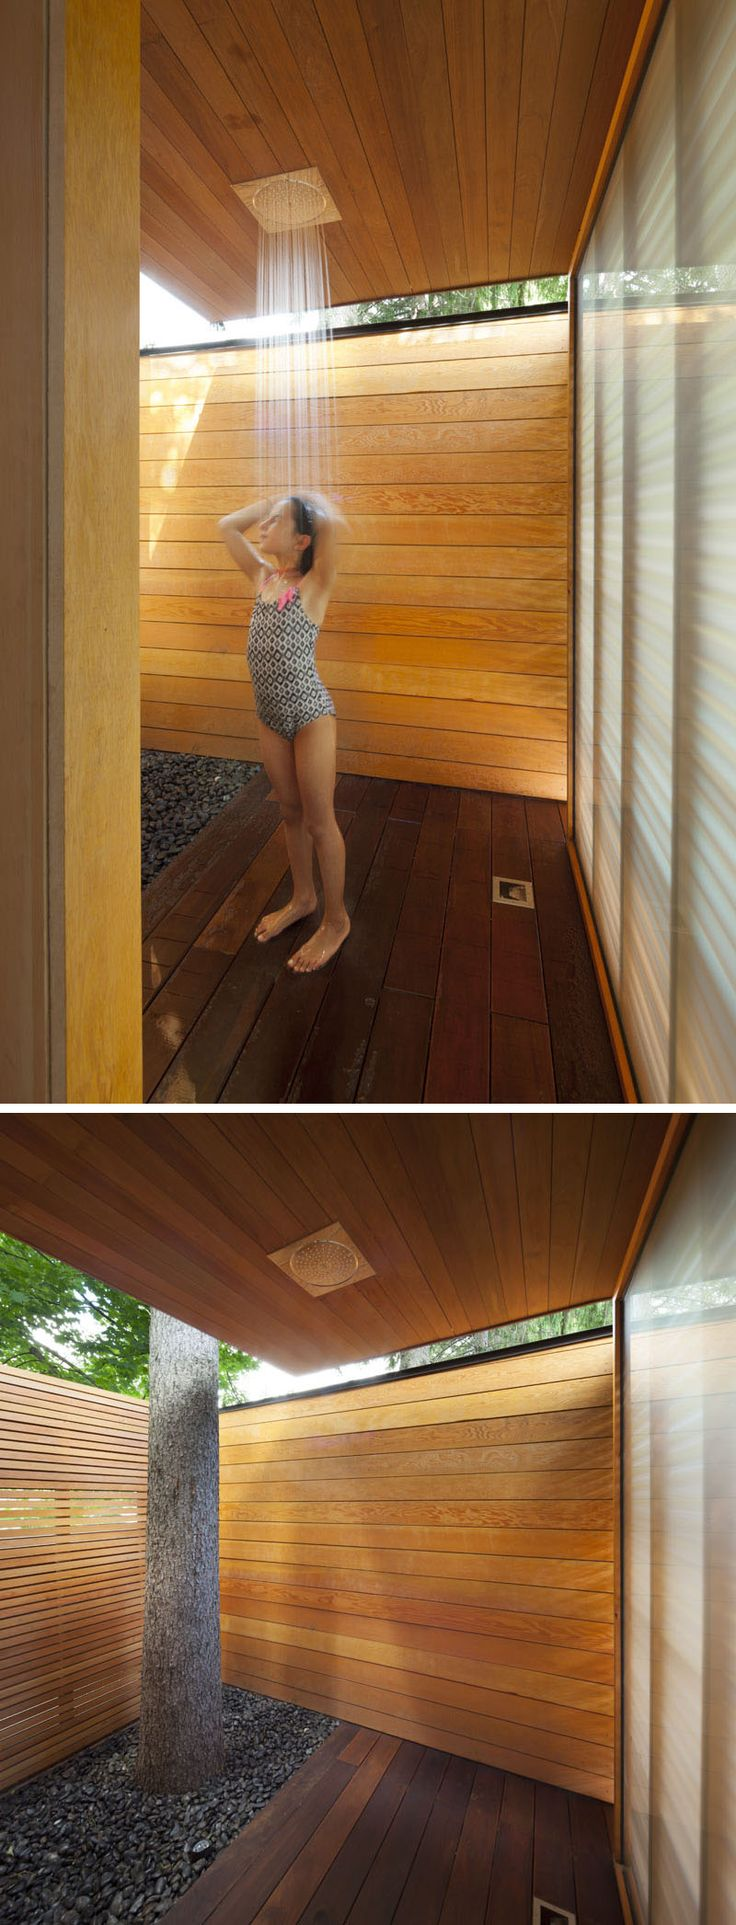 A Pool House Was Designed To Contain A Shower And Change Room For This Home  In Canada. 17 Best images about BATHROOM on Pinterest   Architects  Master